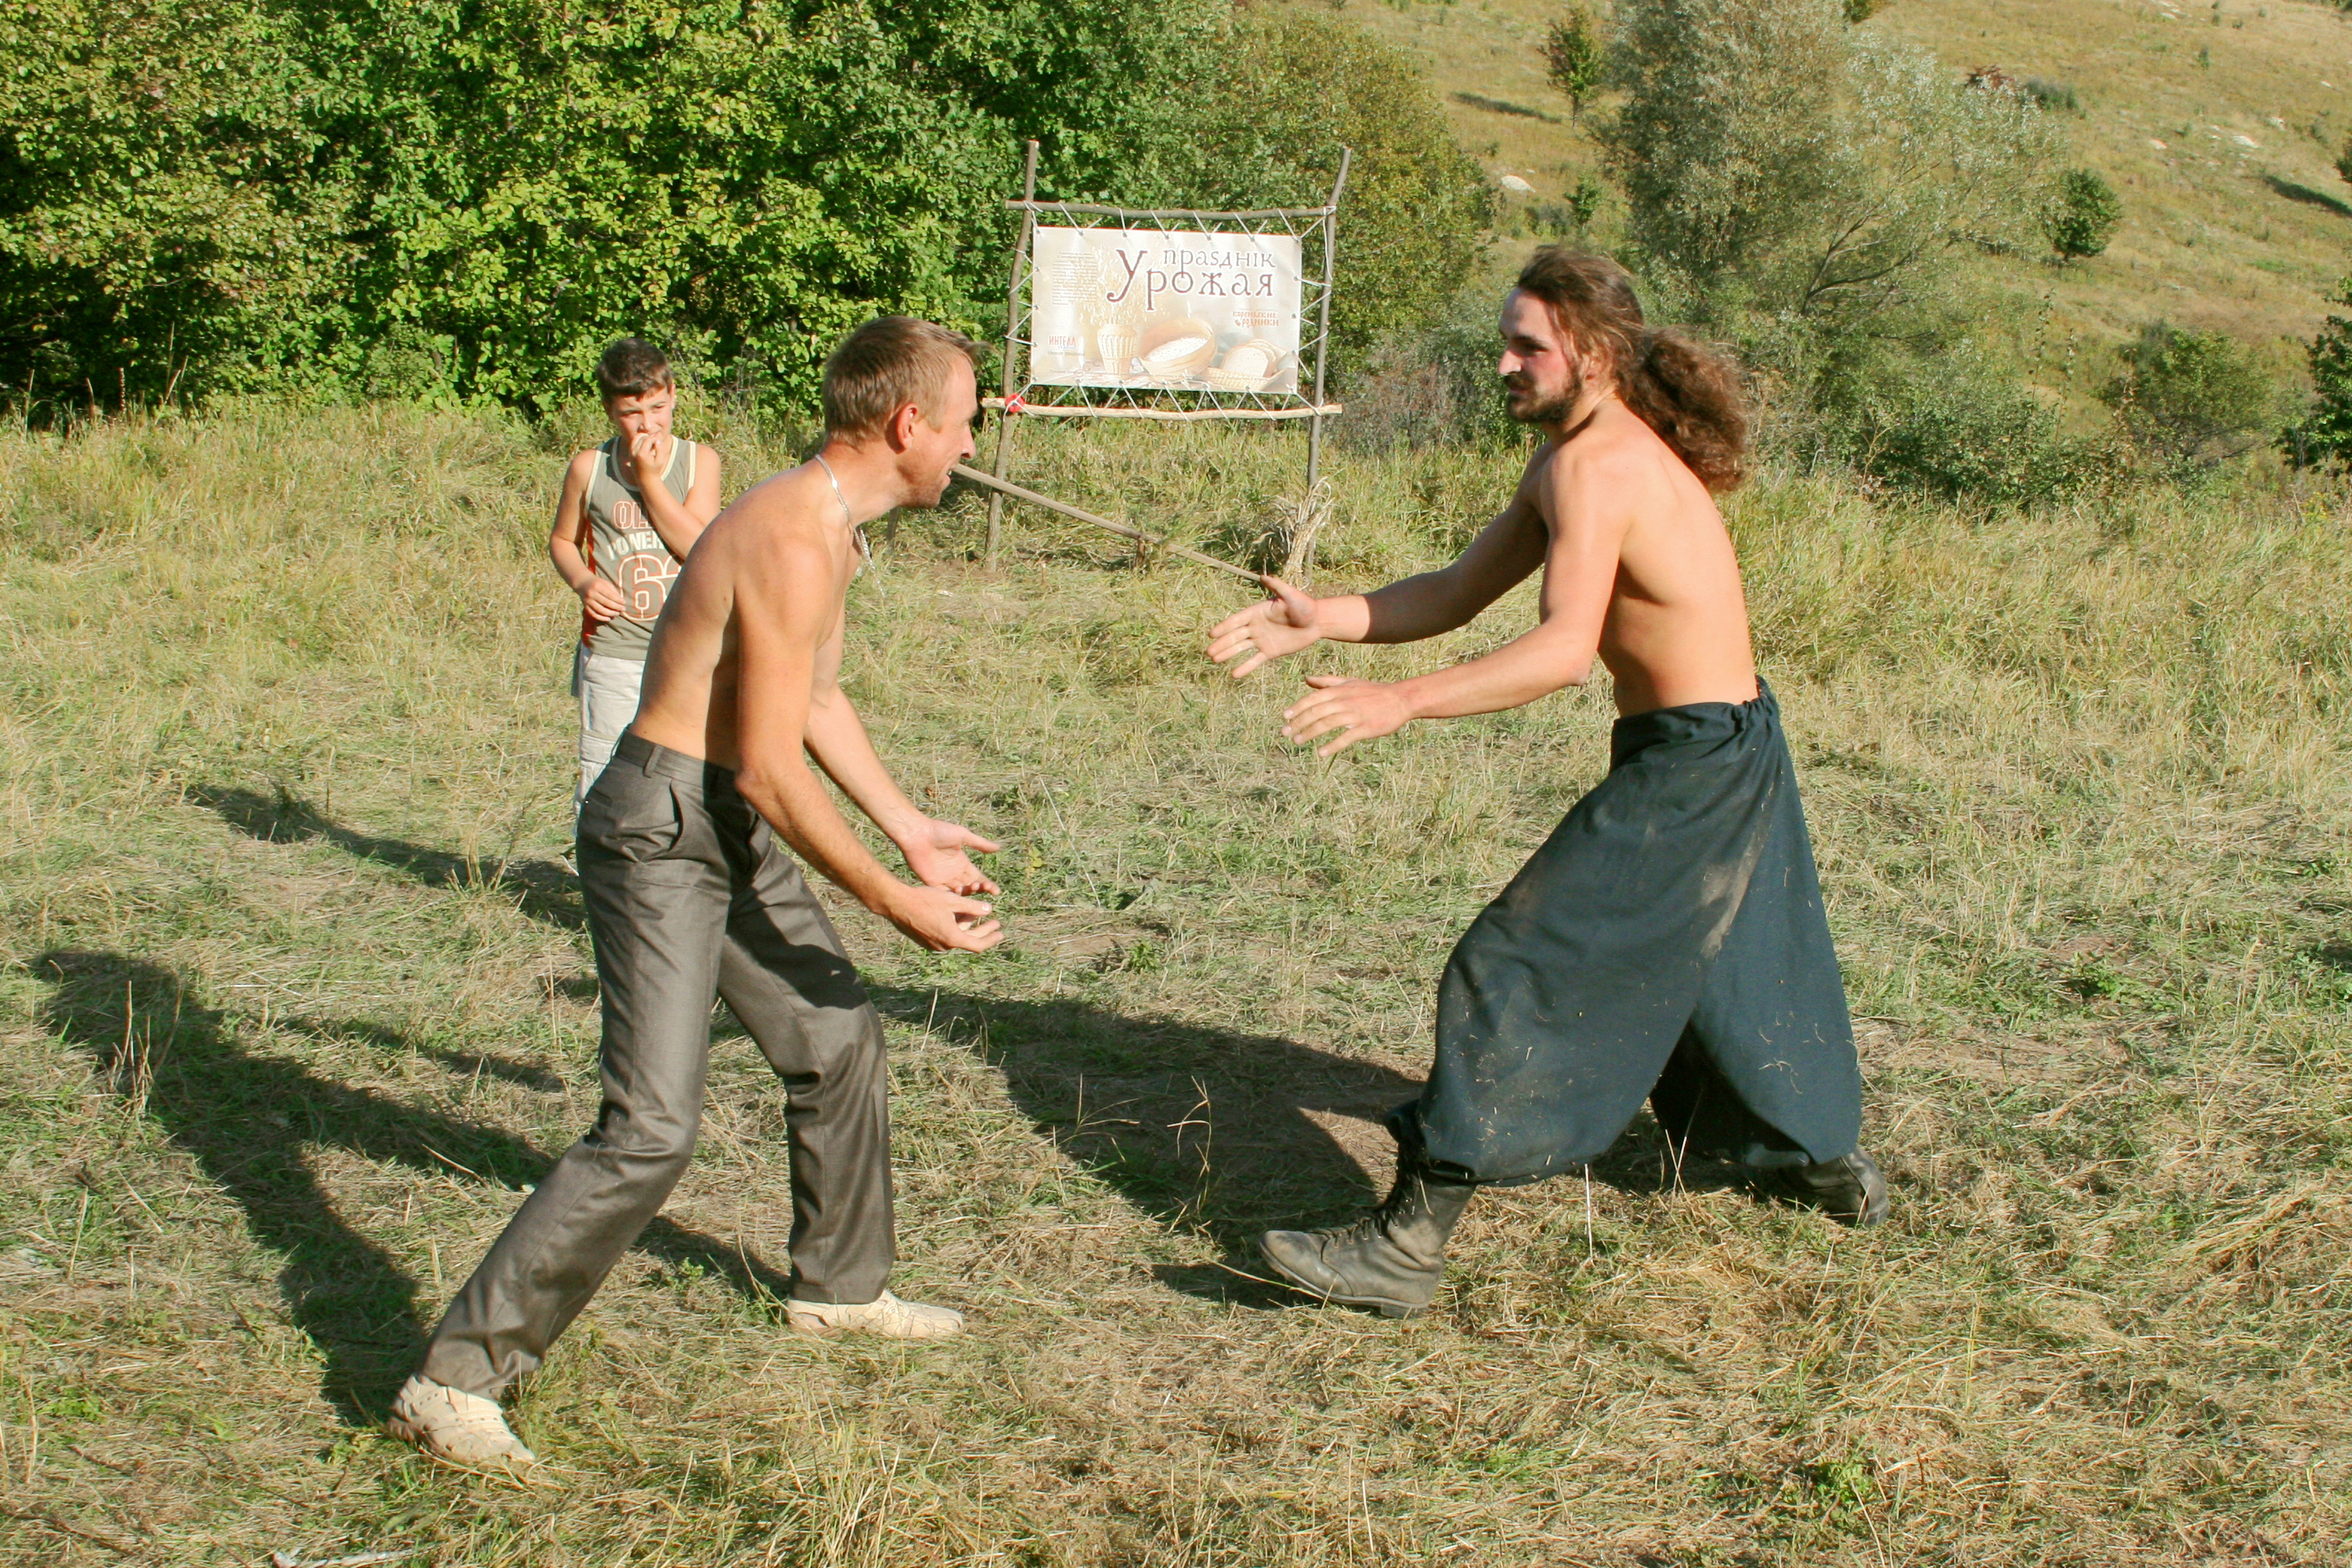 Russian fist fighting